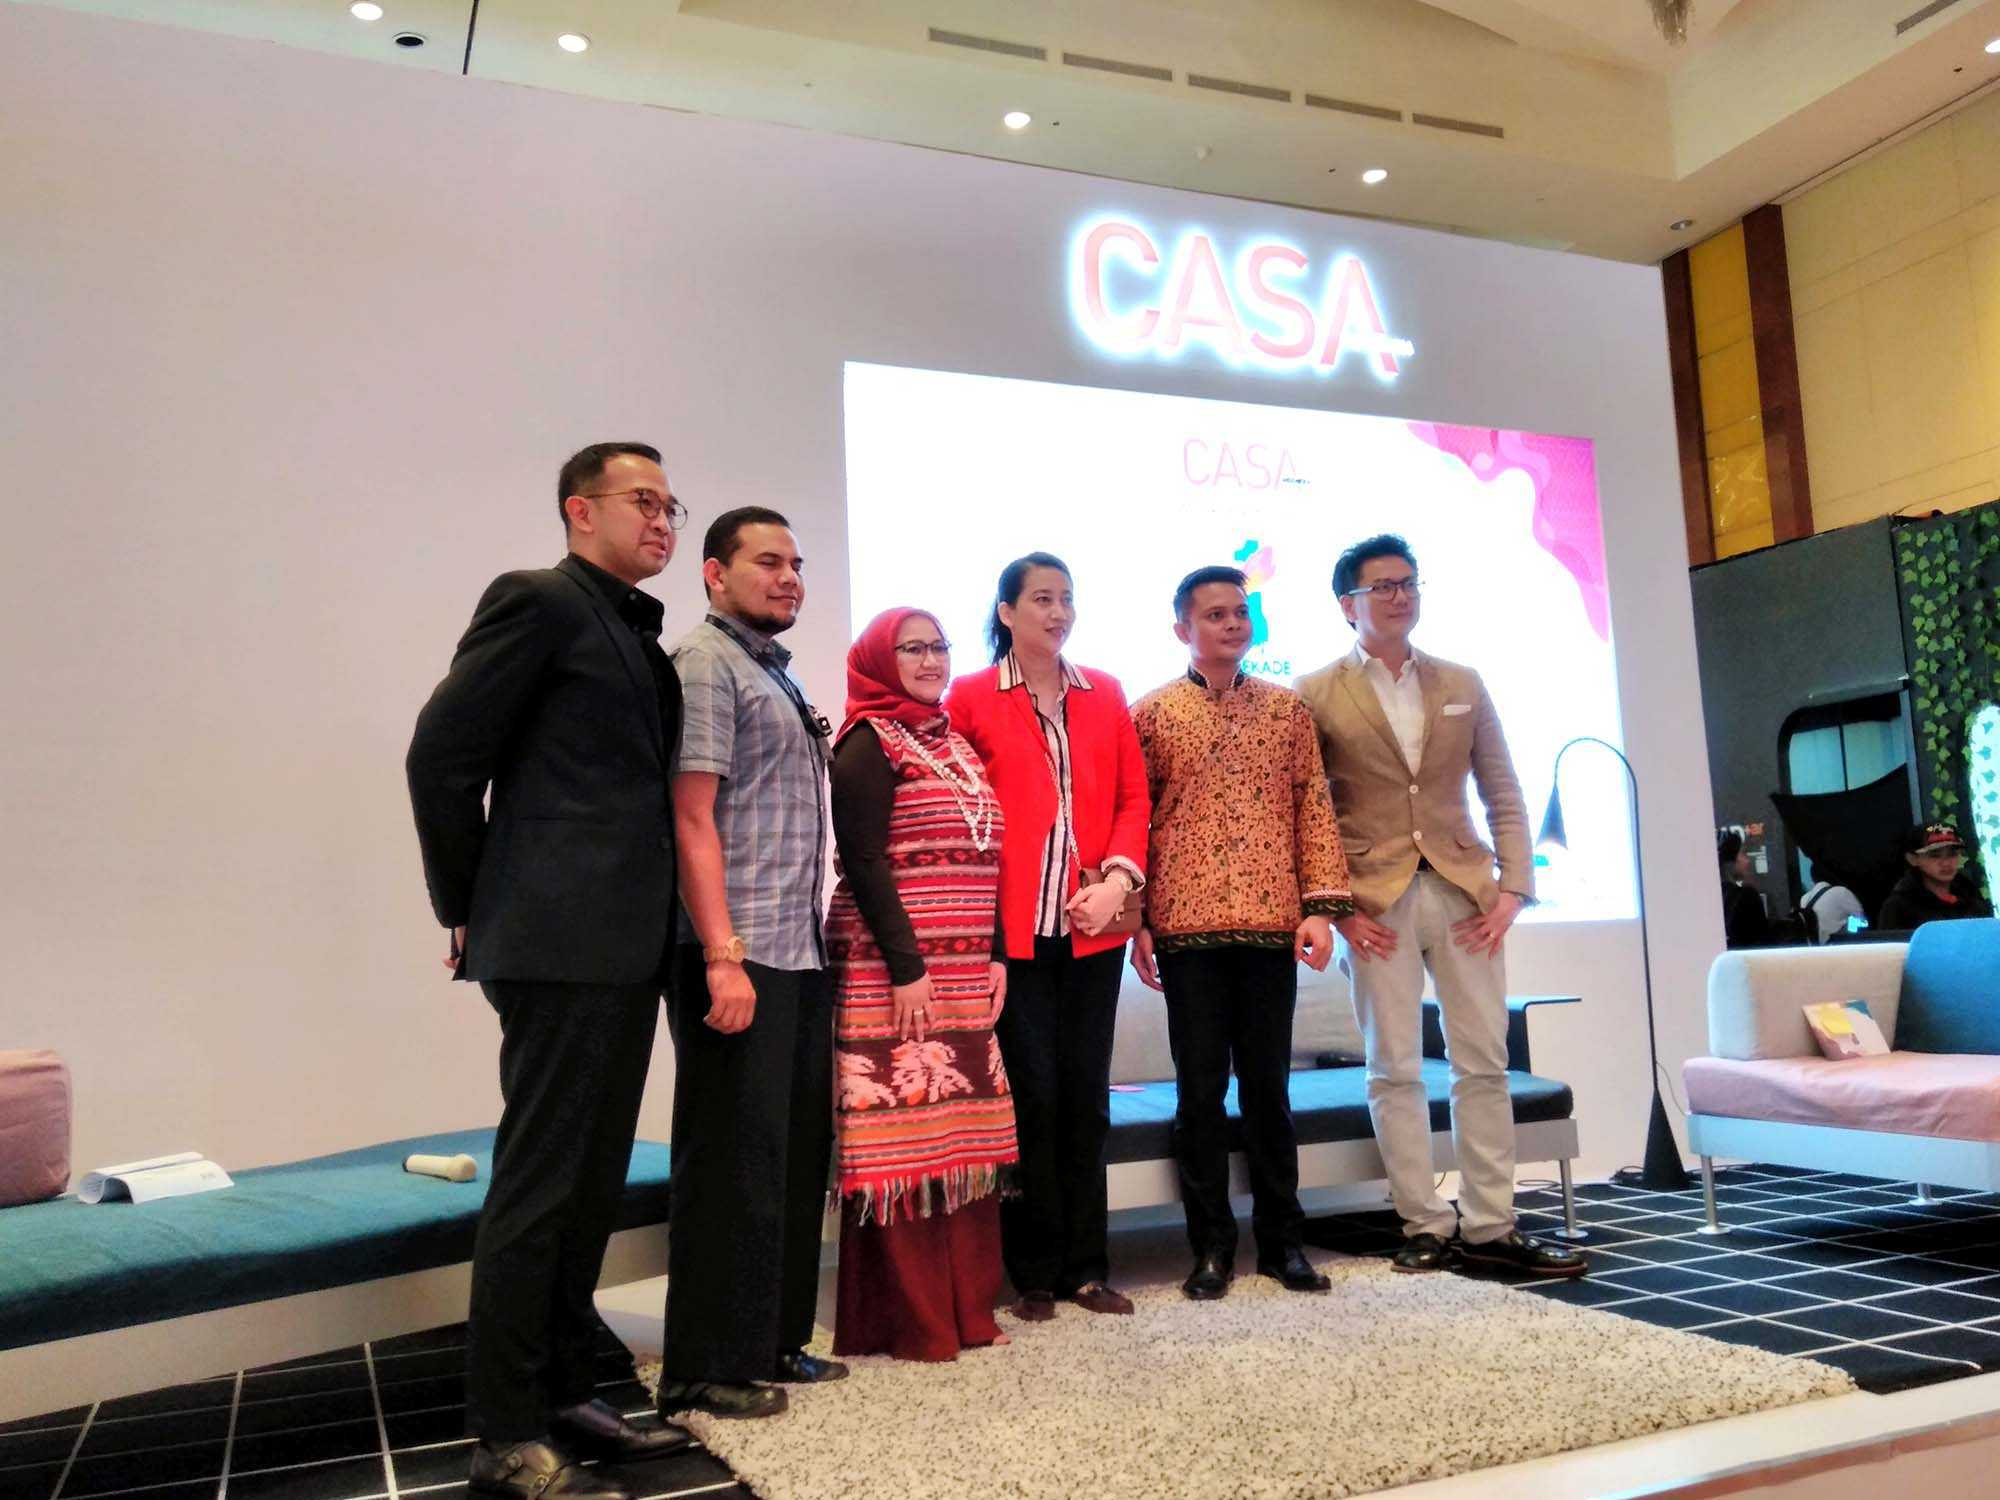 Ki-Ka: Head of MRA Media Business Growth, Iwet Ramadhan; Plt. Direktur Pengembangan Pasar Dalam Negeri Bekraf, Fahmy Akmal; Country Marketing Manager IKEA Indonesia, Eliza Fazia; Creative Director CASA Indonesia, Diana Nazir; Managing Editor CASA Indonesia, Putra Tjokro; dan Exhibition Director CASA Indonesia, Cosmas D. Gozali. (Sumber: Arsitag.com)